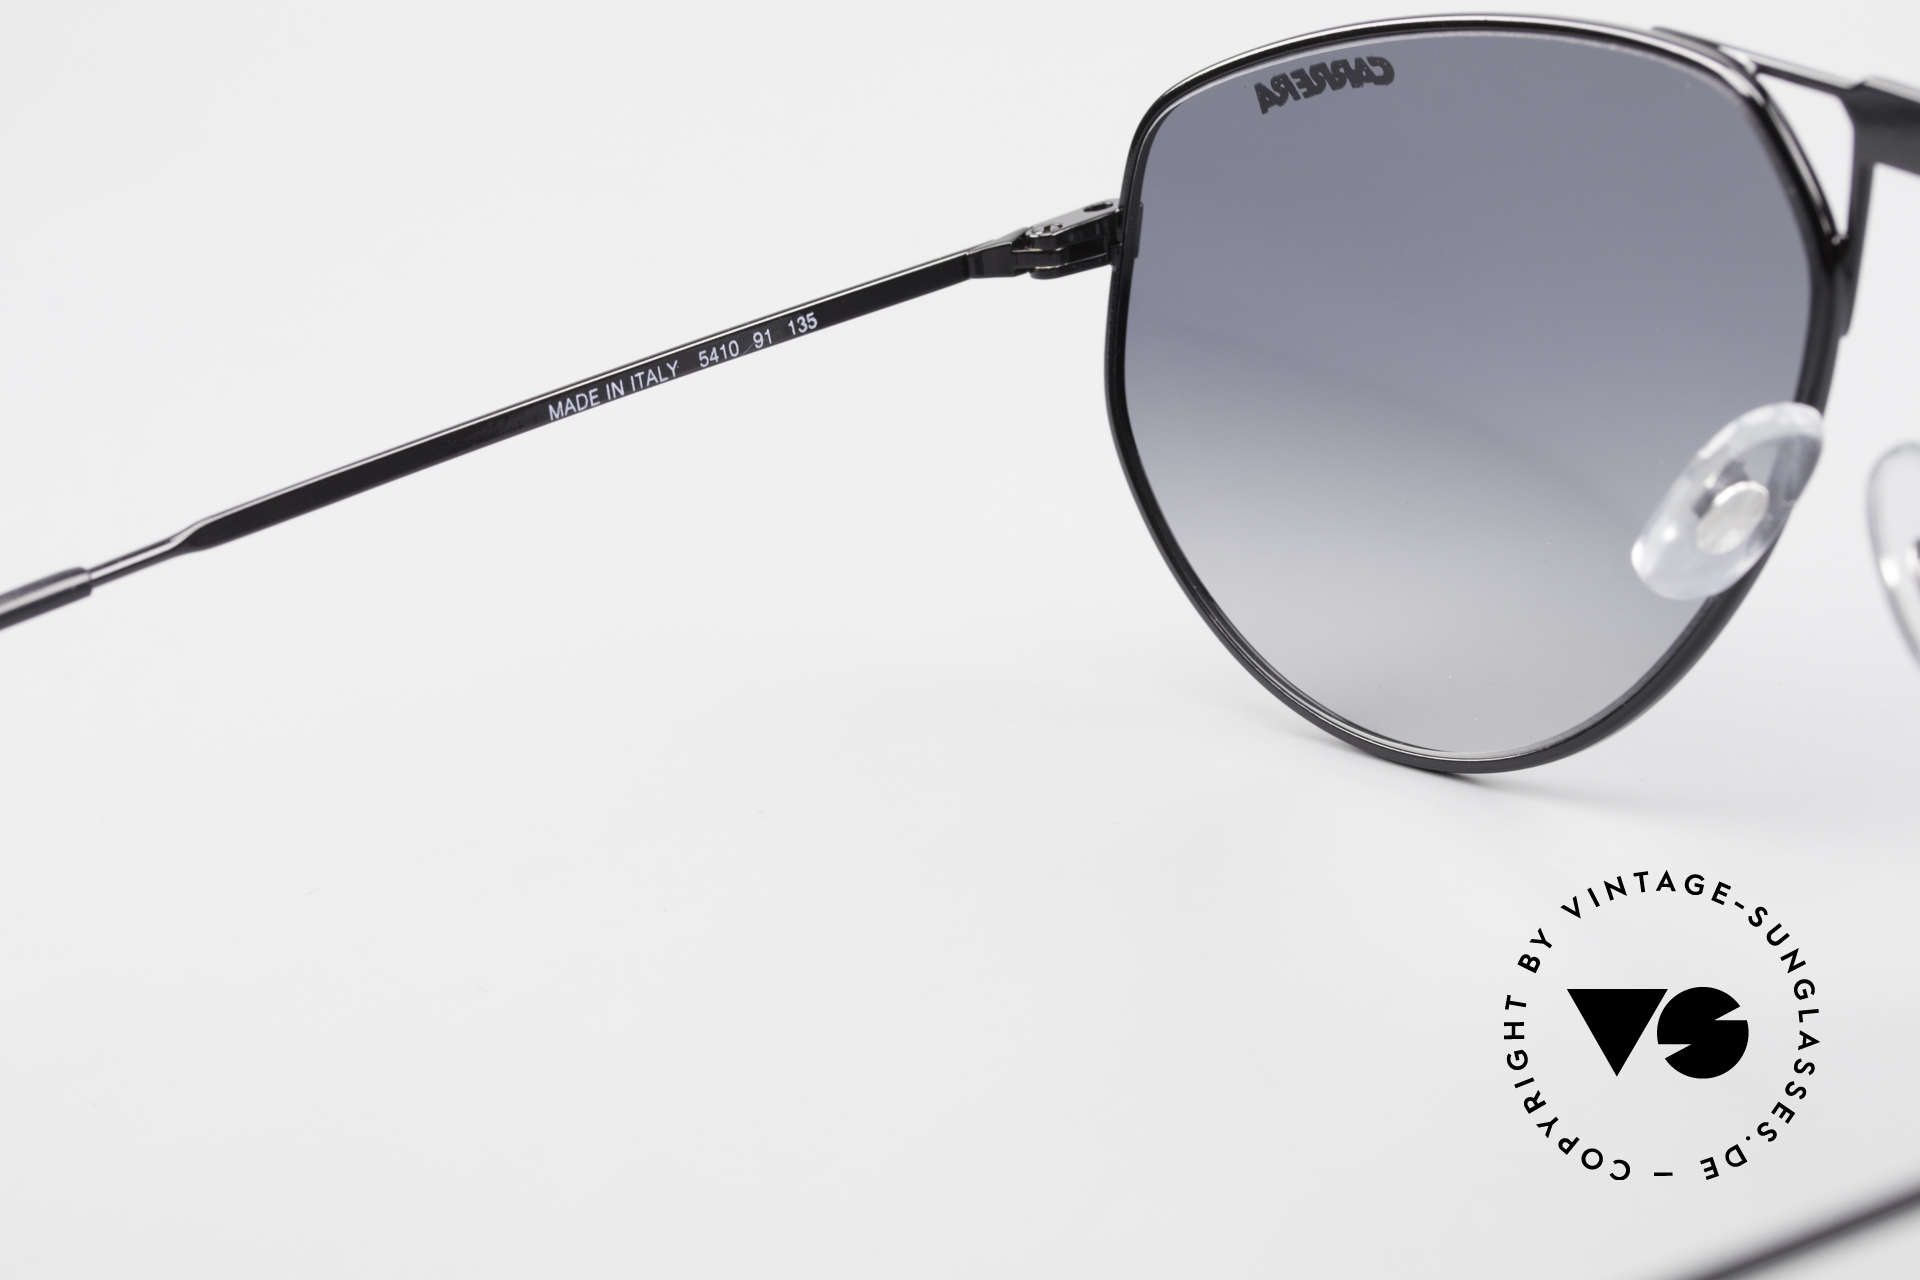 Carrera 5410 Sport Performance 90's Shades, unworn (like all our vintage sunglasses by CARRERA), Made for Men